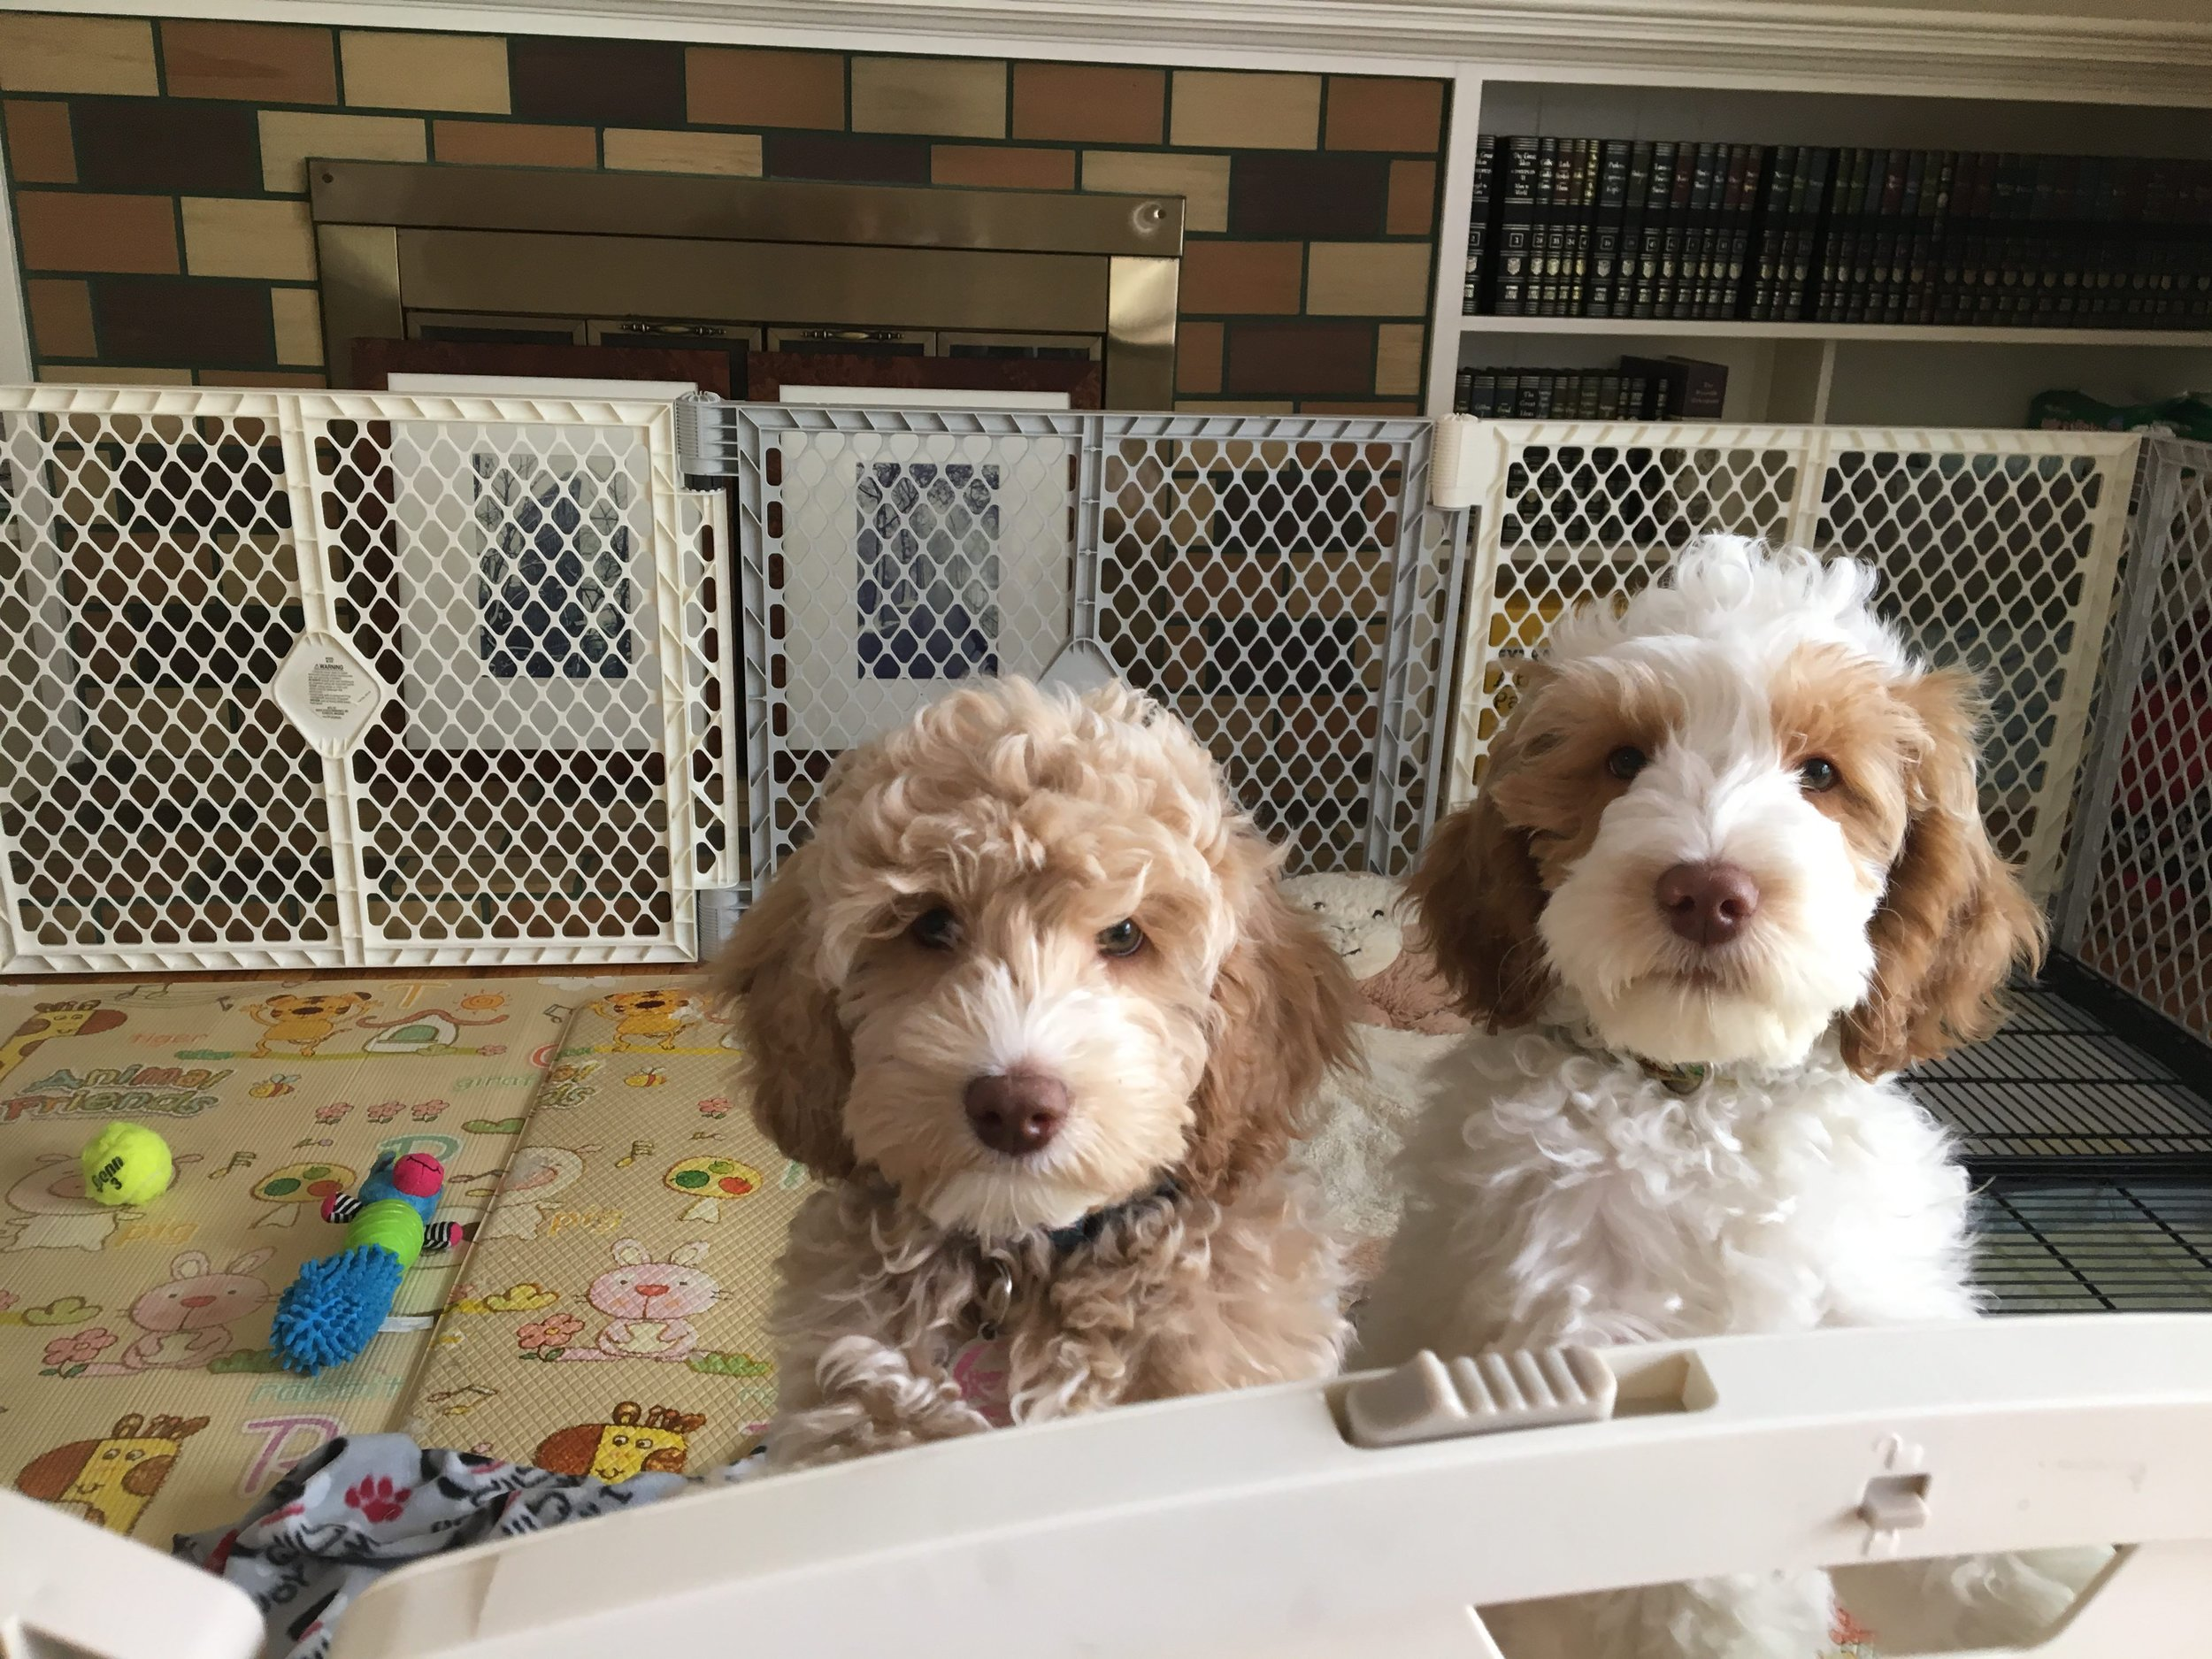 Puppy Training 101: Potty training requires keeping your puppy in a long-term confinement area.